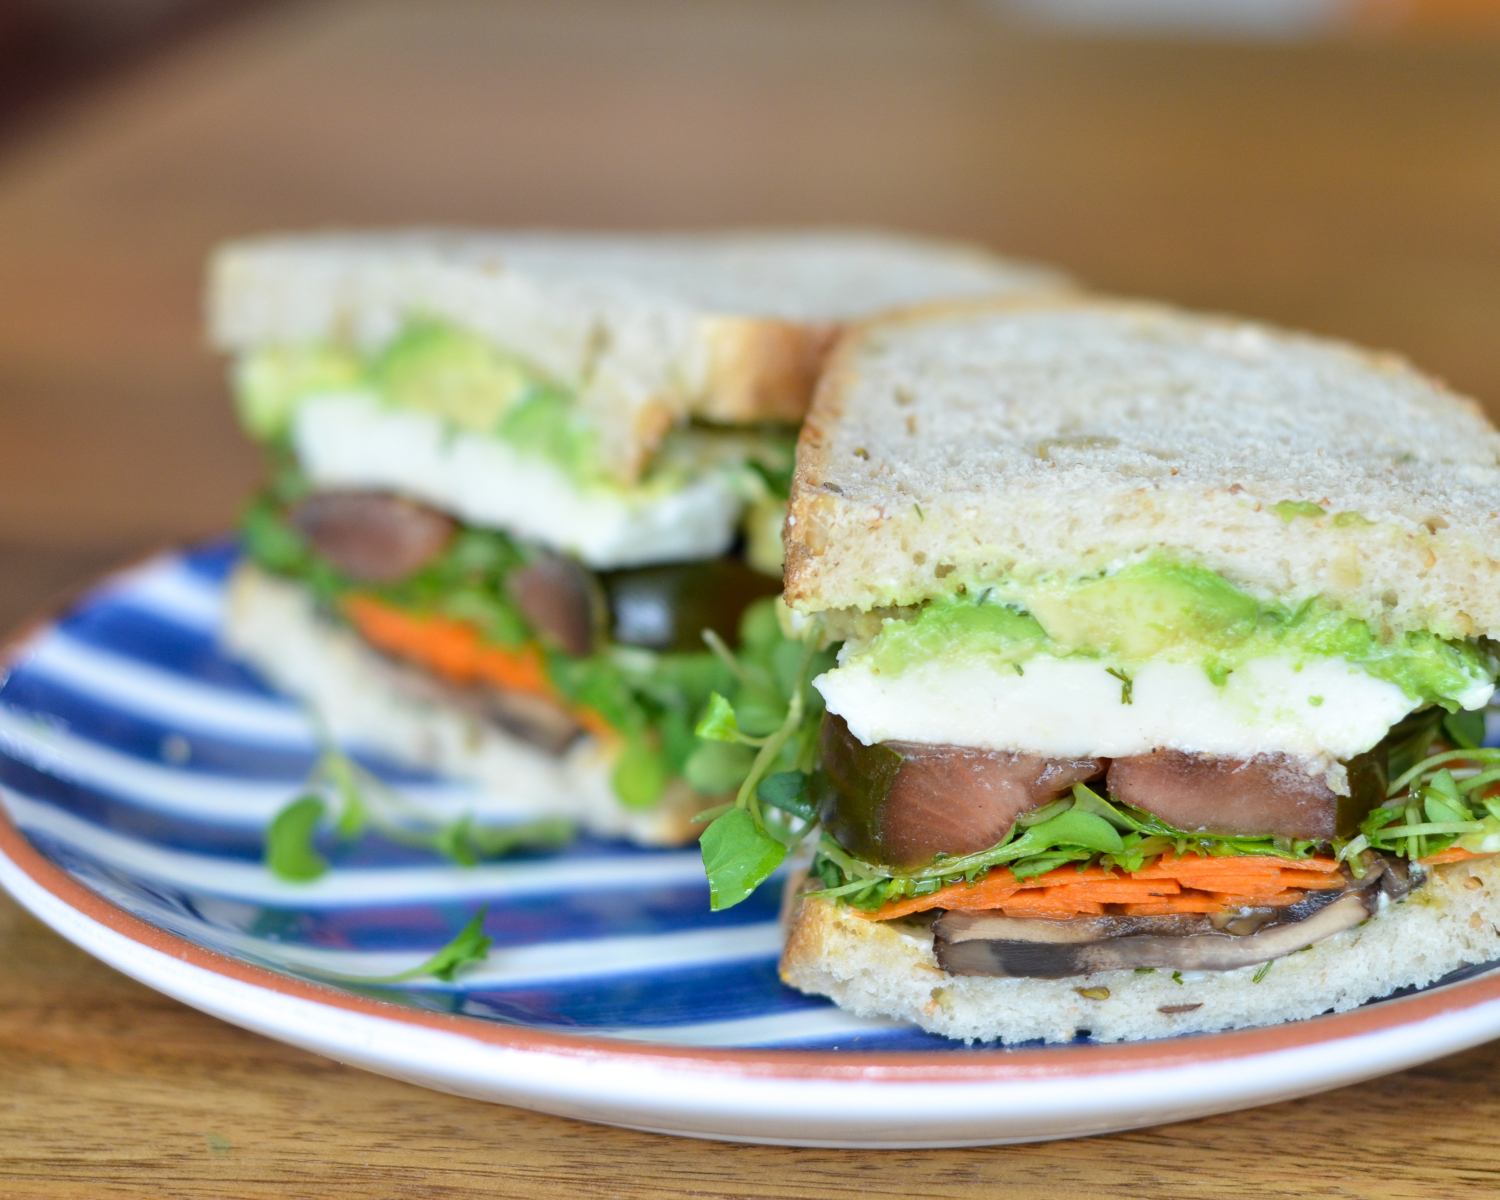 The ultimate veggie sandwich recipe - you do not have to wait for a restaurant to make you an amazing veggie sandwich for lunch. Feed yourself well at home in about 15 minutes!